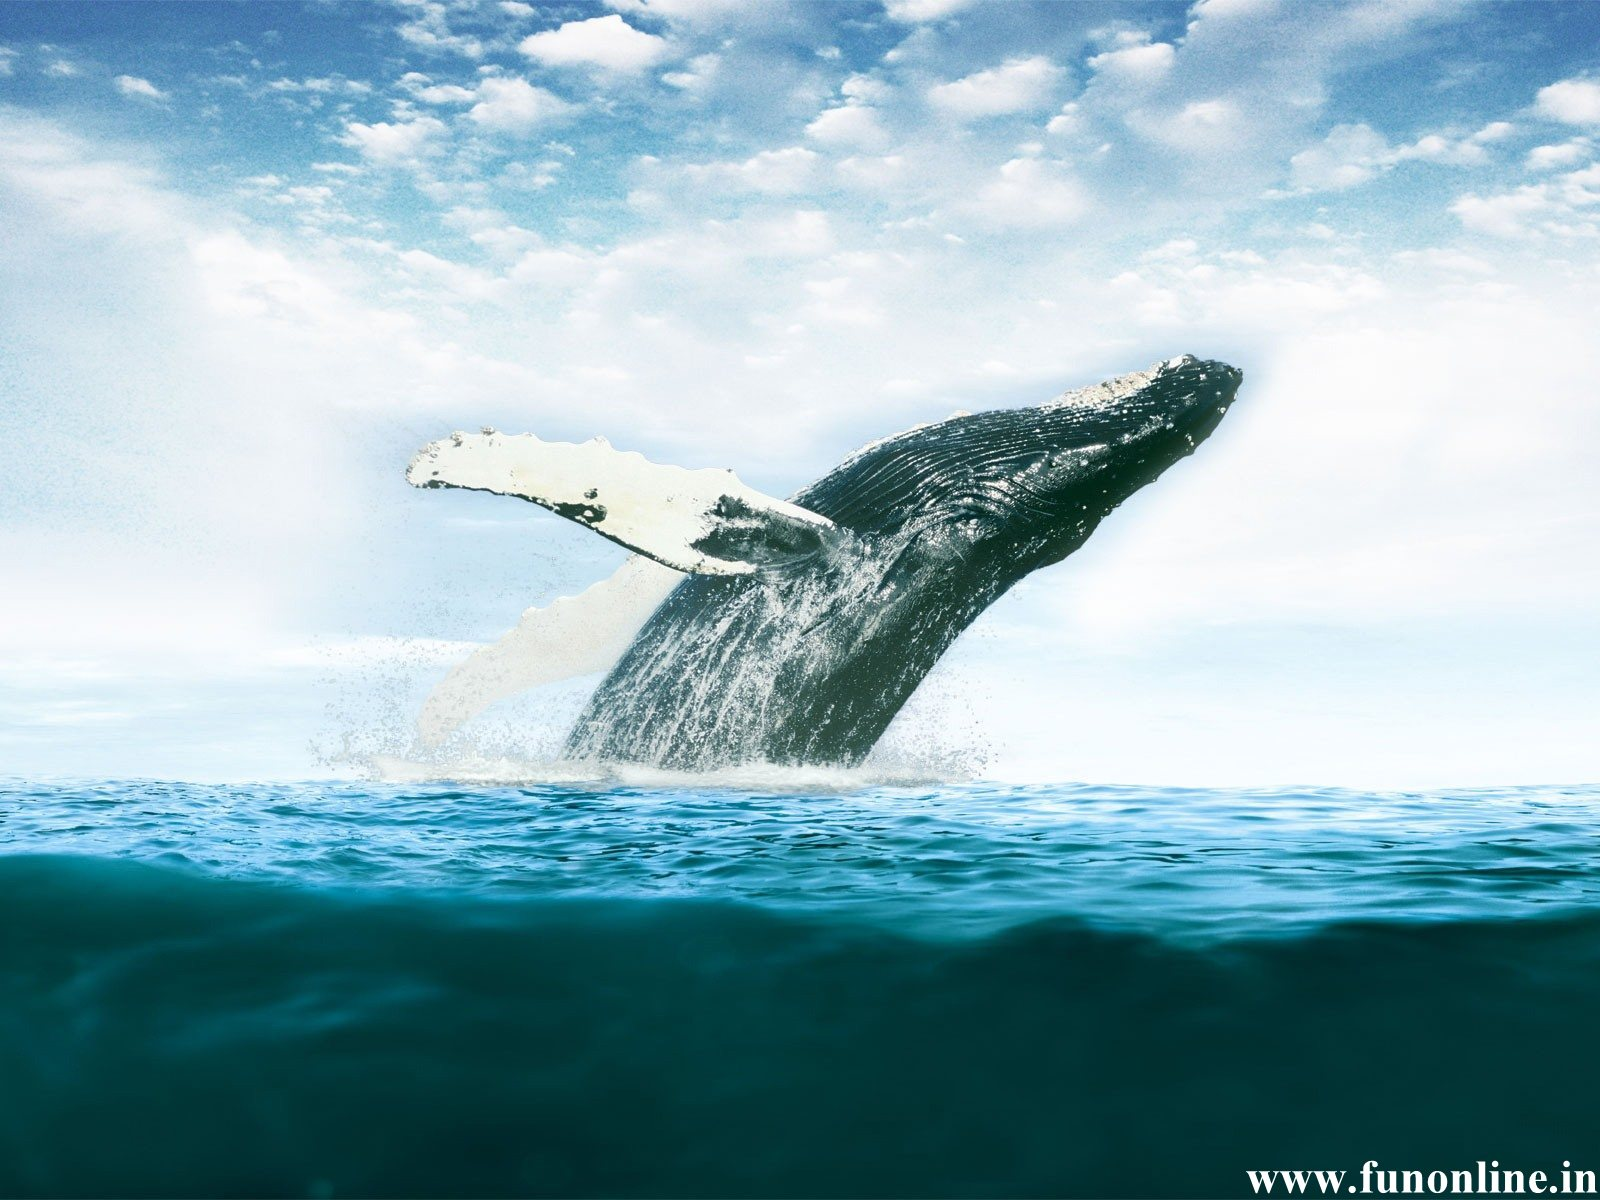 Whale Wallpapers Download Killer and Blue Whales HD Wallpaper 1600x1200